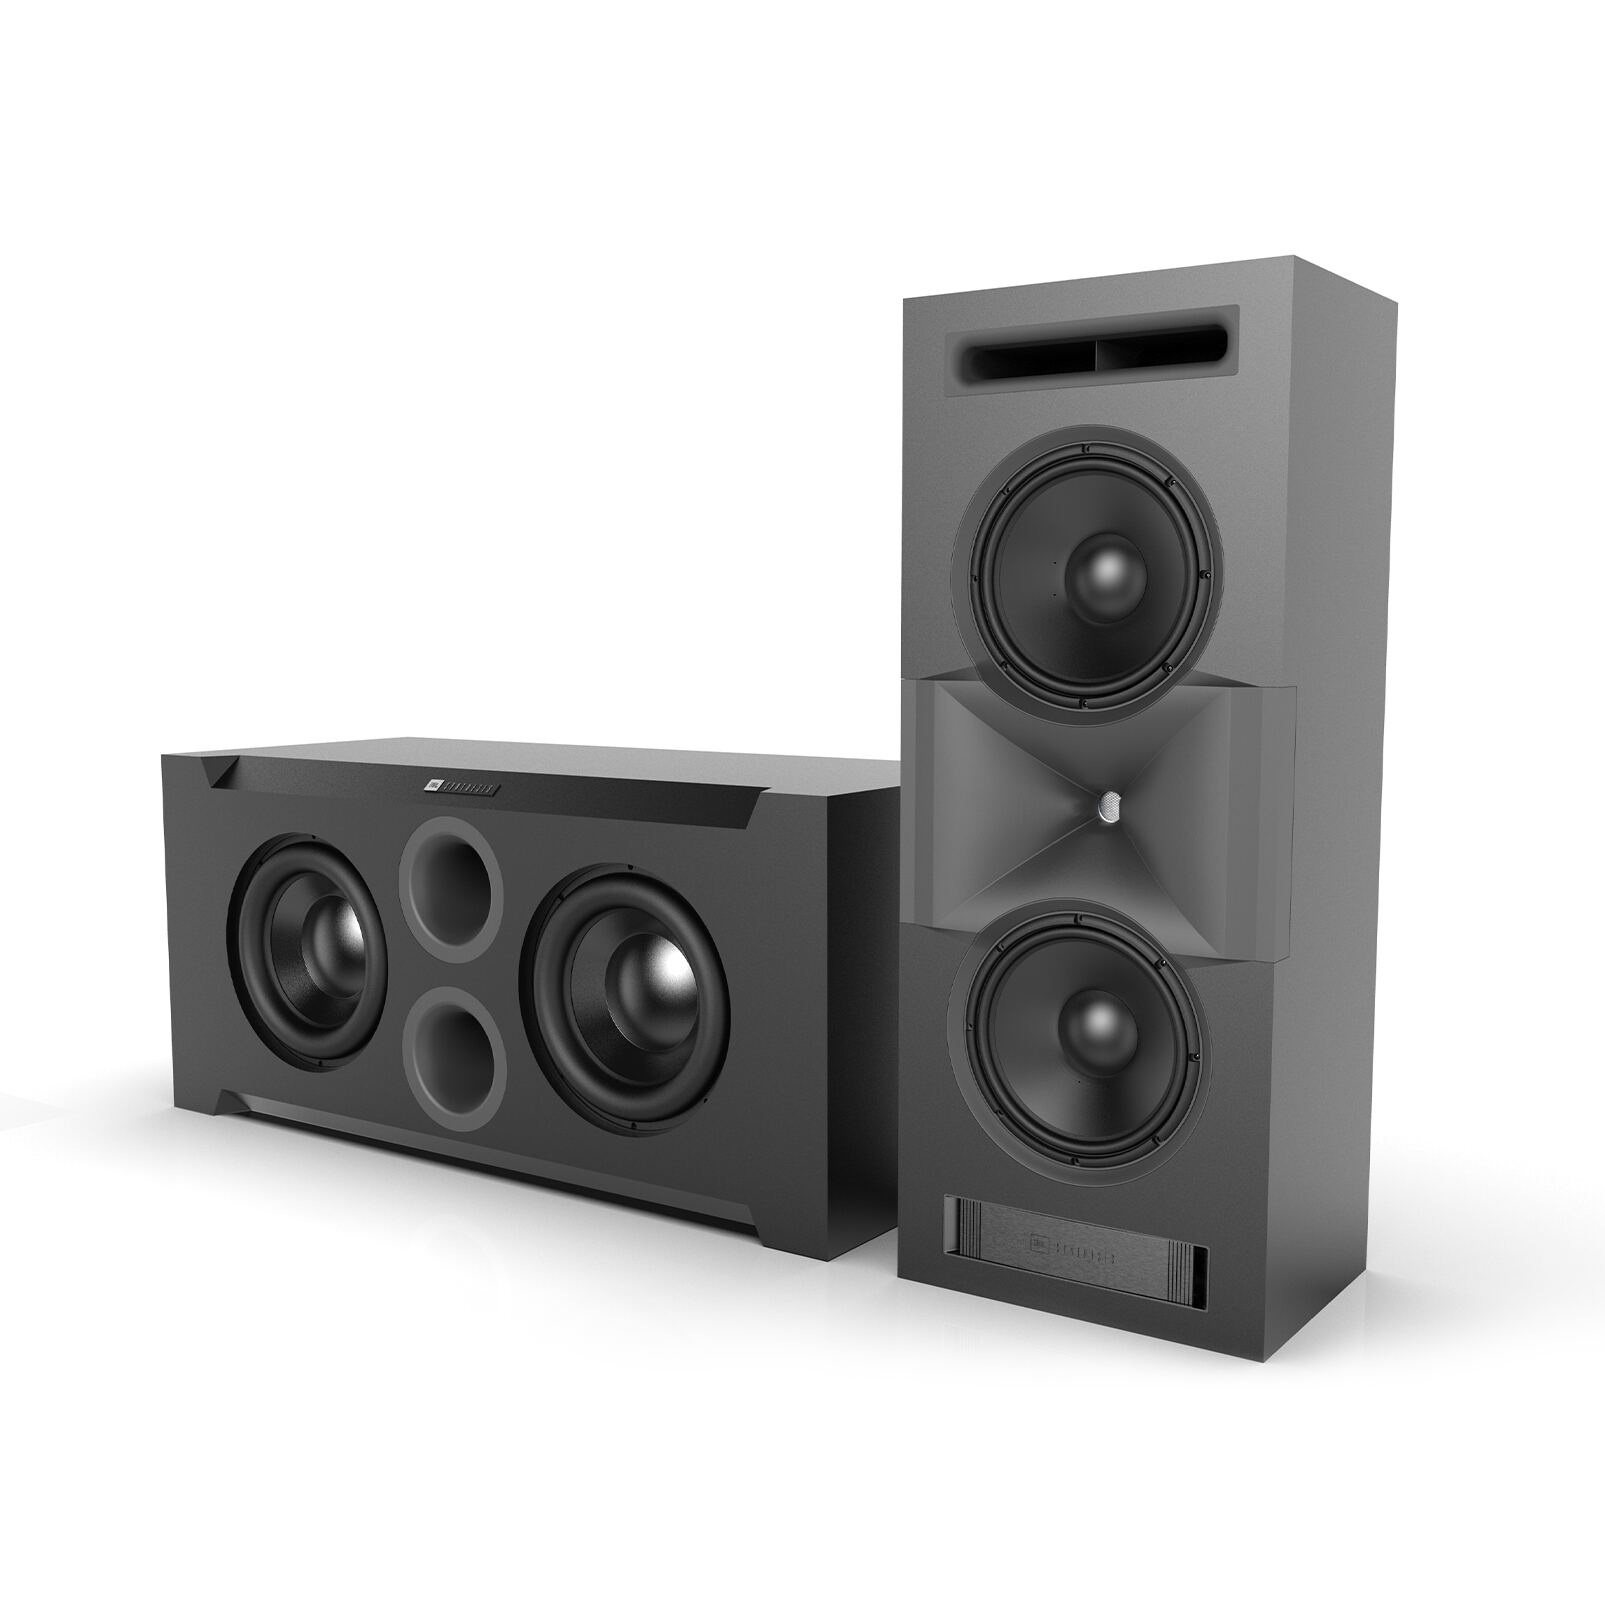 JBL SCL-1 and SSW-1 Series